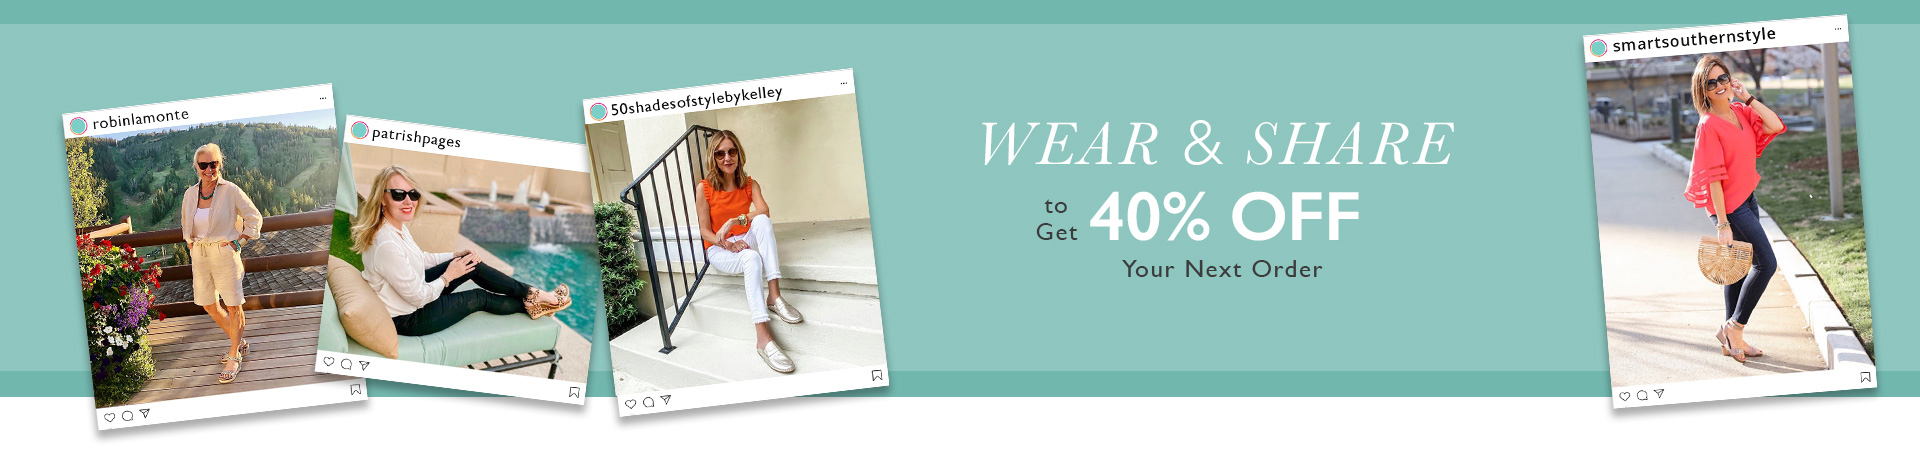 Aetrex Wear and Share Campaign - 40% off next order